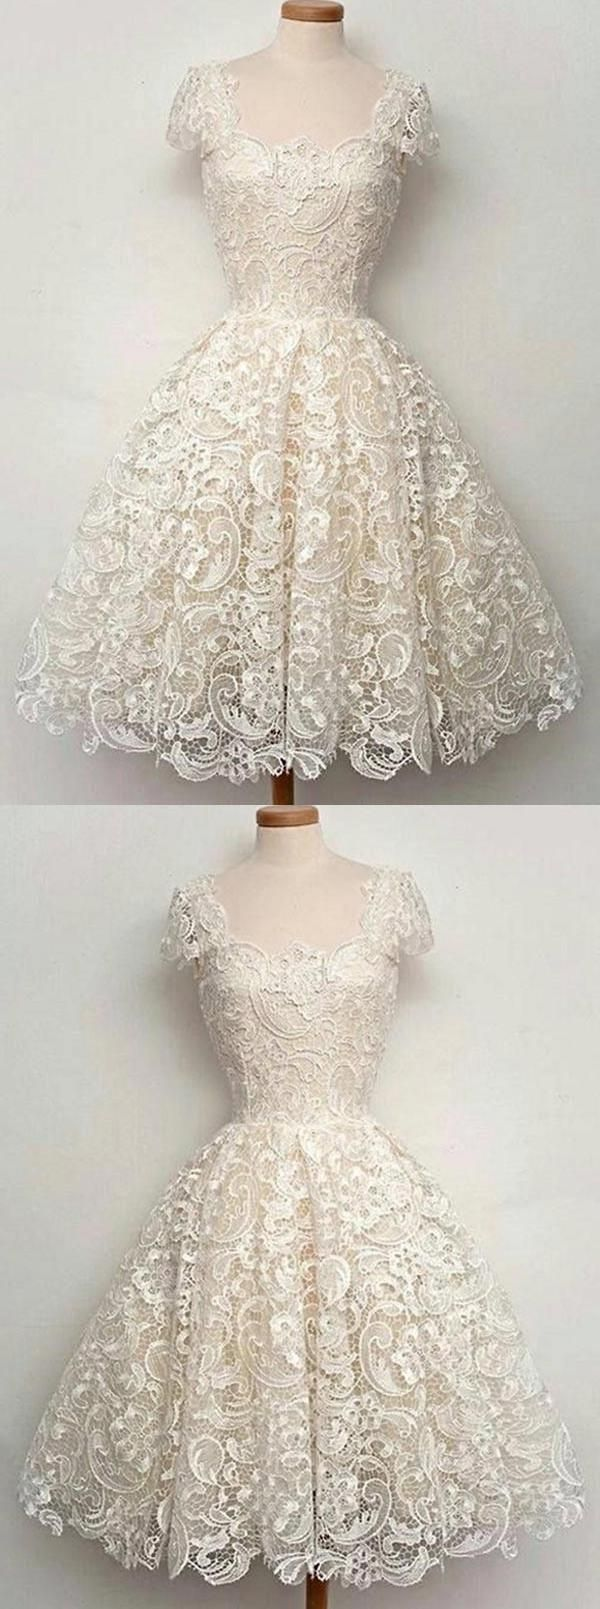 Lace short vintage aline okdr homecoming dresses